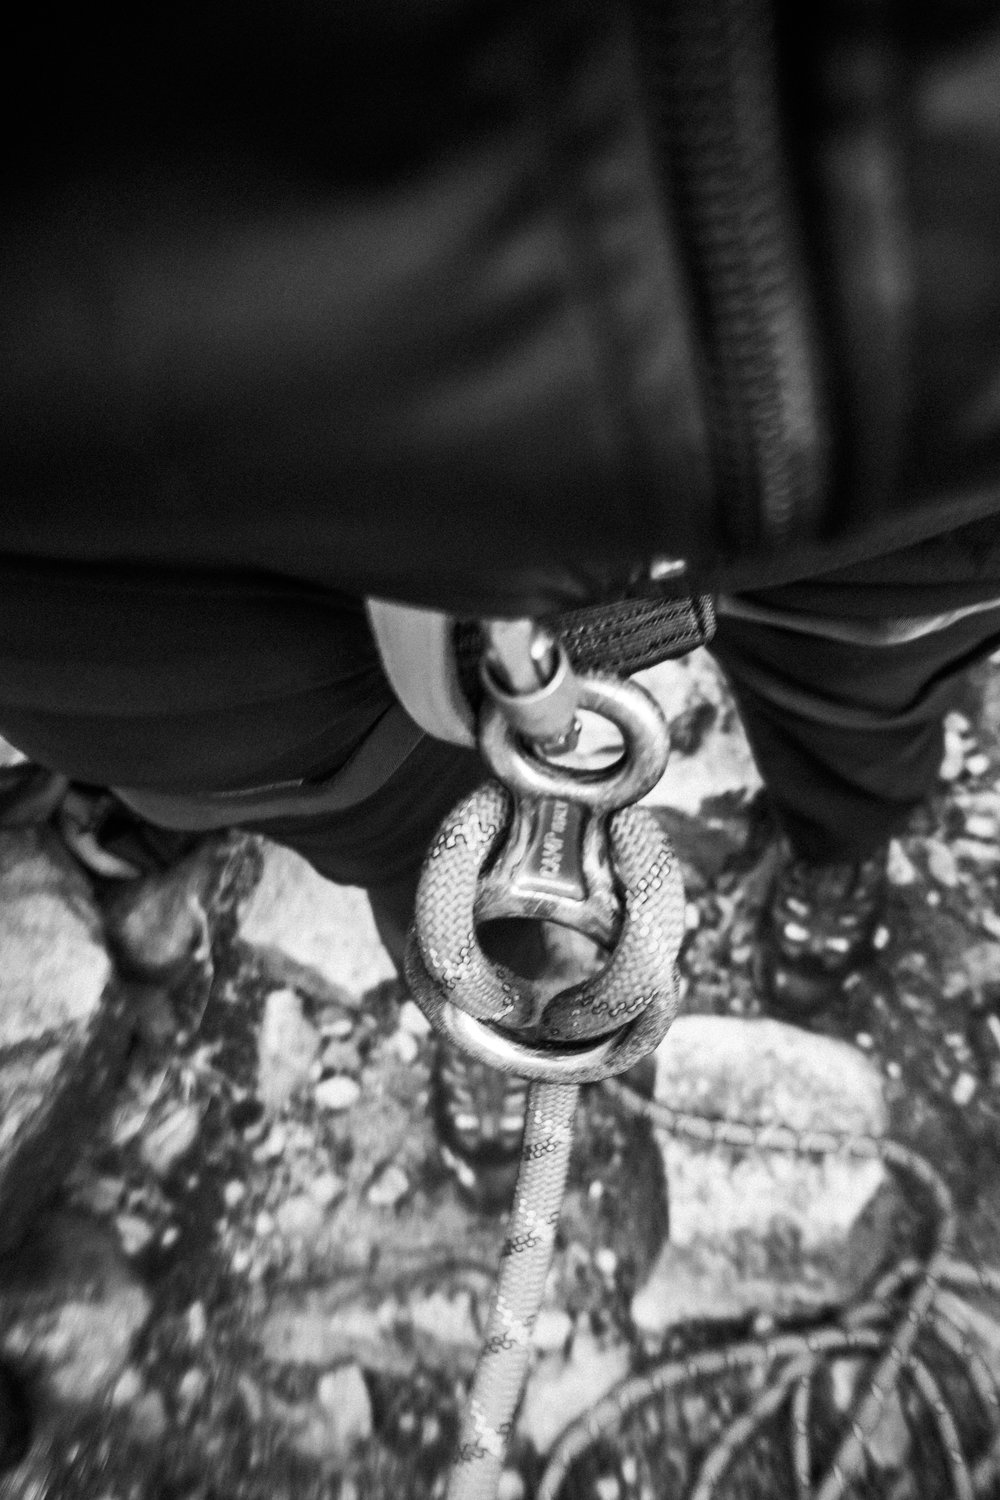 4-22-17 Rock Climbing black & white-8.jpg